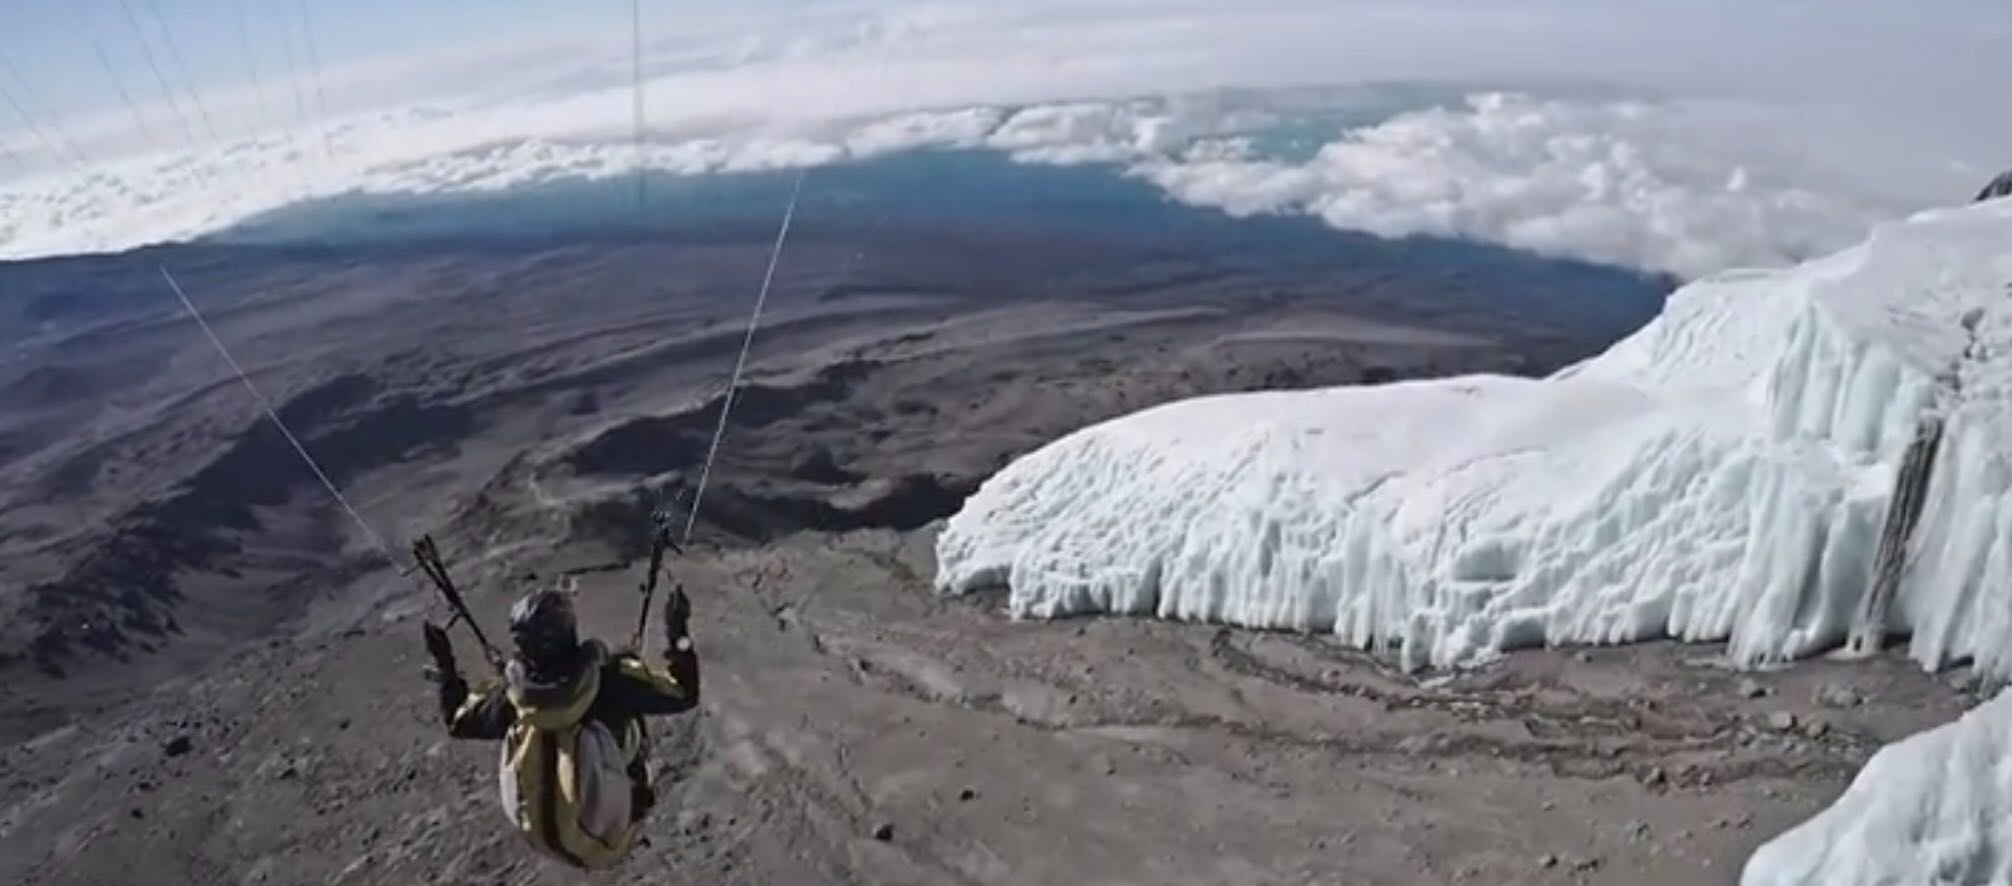 B.C. man dies after paragliding from top of Mount Kilimanjaro